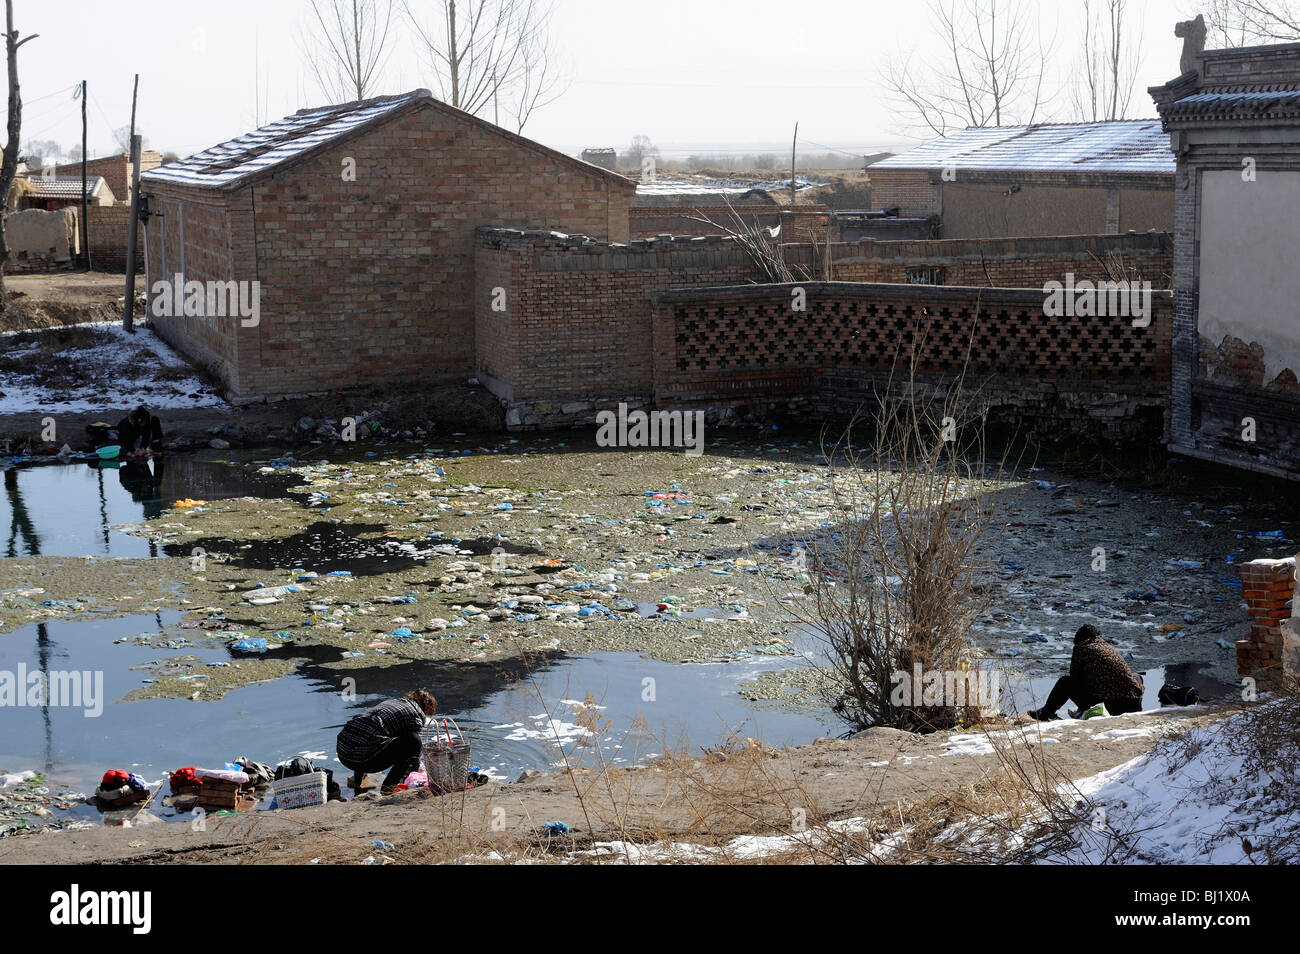 Women washing clothes in a polluted pond in a village in Hebei province, China. 02-Mar-2010 - Stock Image